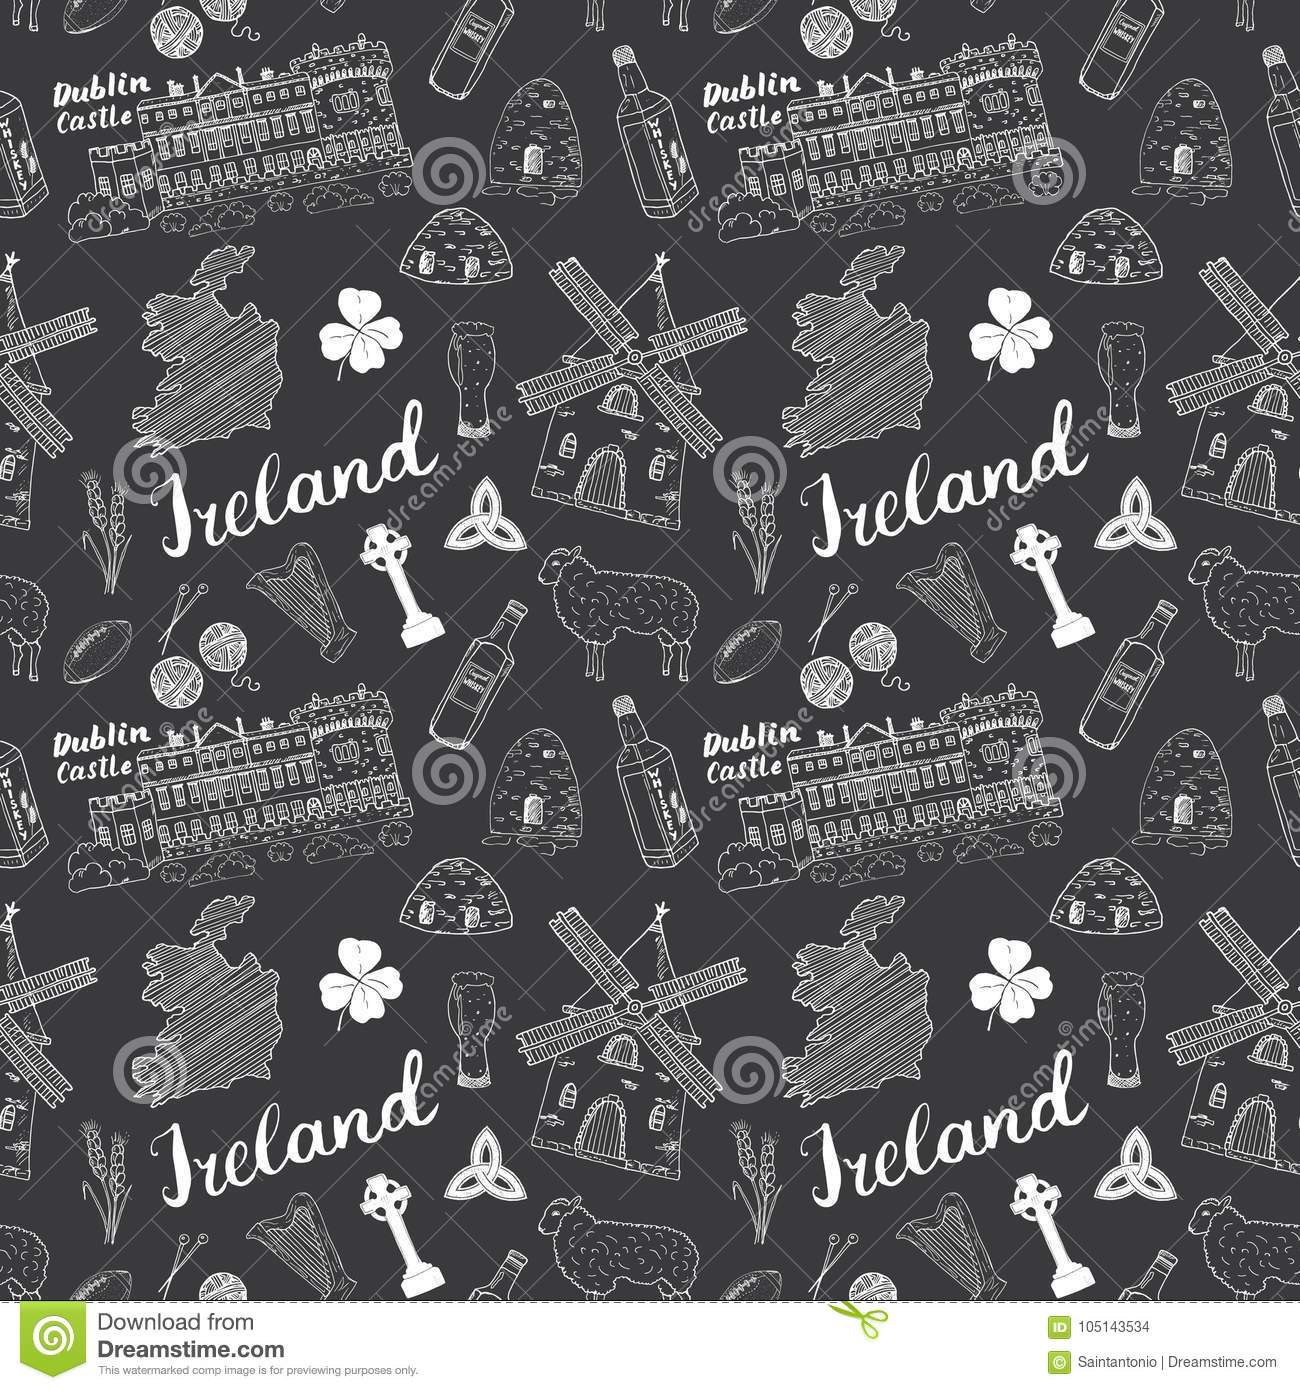 Sketch Map Of Ireland.Ireland Sketch Doodles Seamless Pattern Irish Elements With Flag